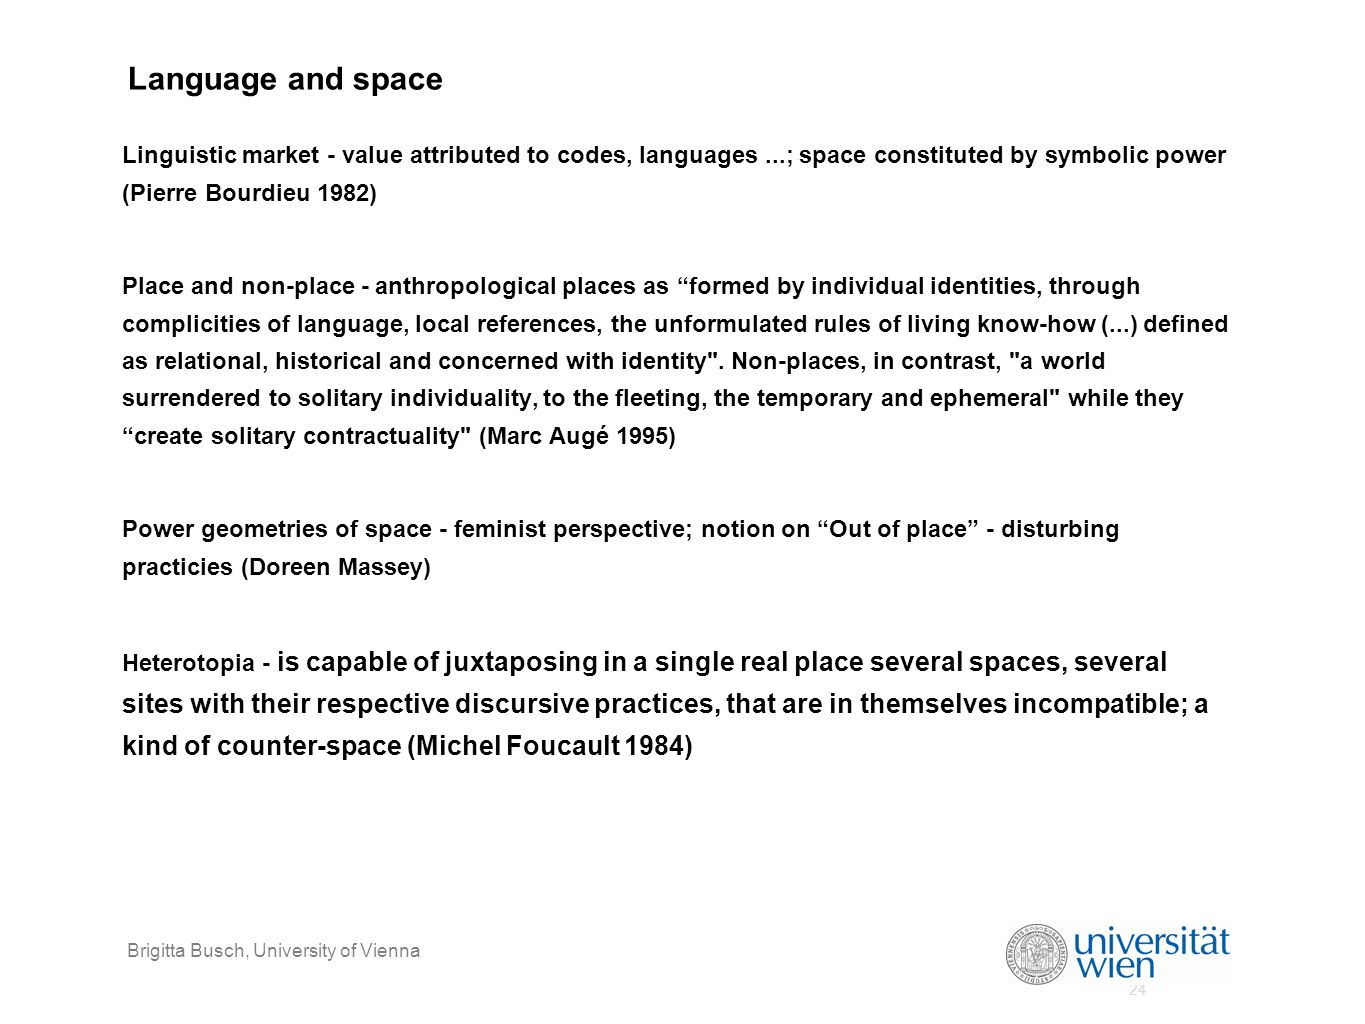 24 Brigitta Busch, University of Vienna Language and space Linguistic market - value attributed to codes, languages...; space constituted by symbolic power (Pierre Bourdieu 1982) Place and non-place - anthropological places as formed by individual identities, through complicities of language, local references, the unformulated rules of living know-how (...) defined as relational, historical and concerned with identity .